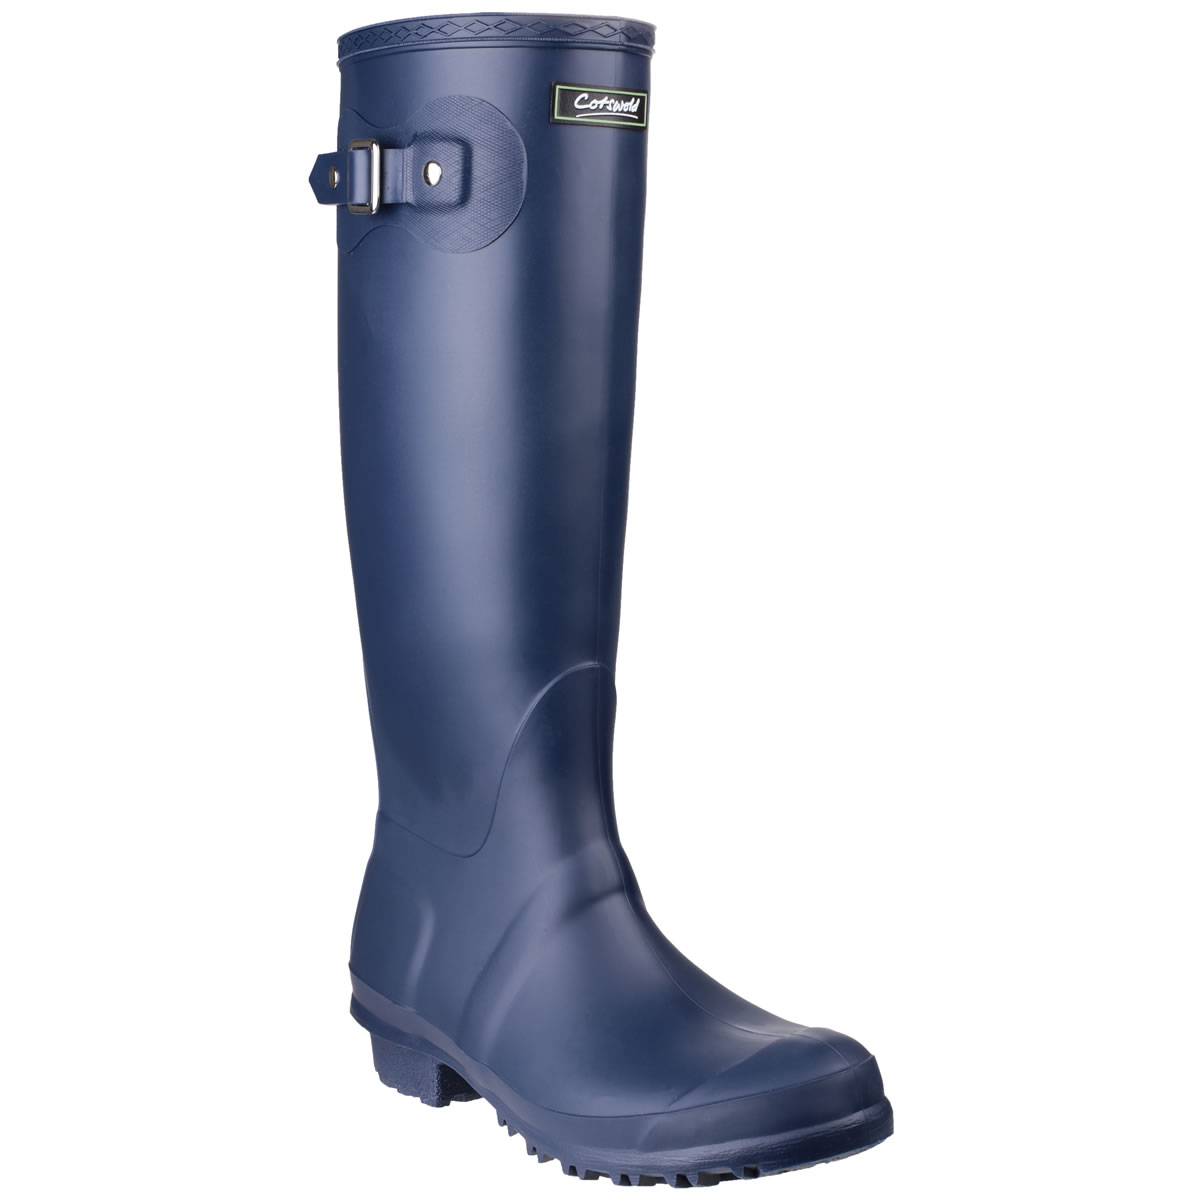 Extra image of Womens Cotswold Sandringham Wellington Boots - Navy - UK Size 6